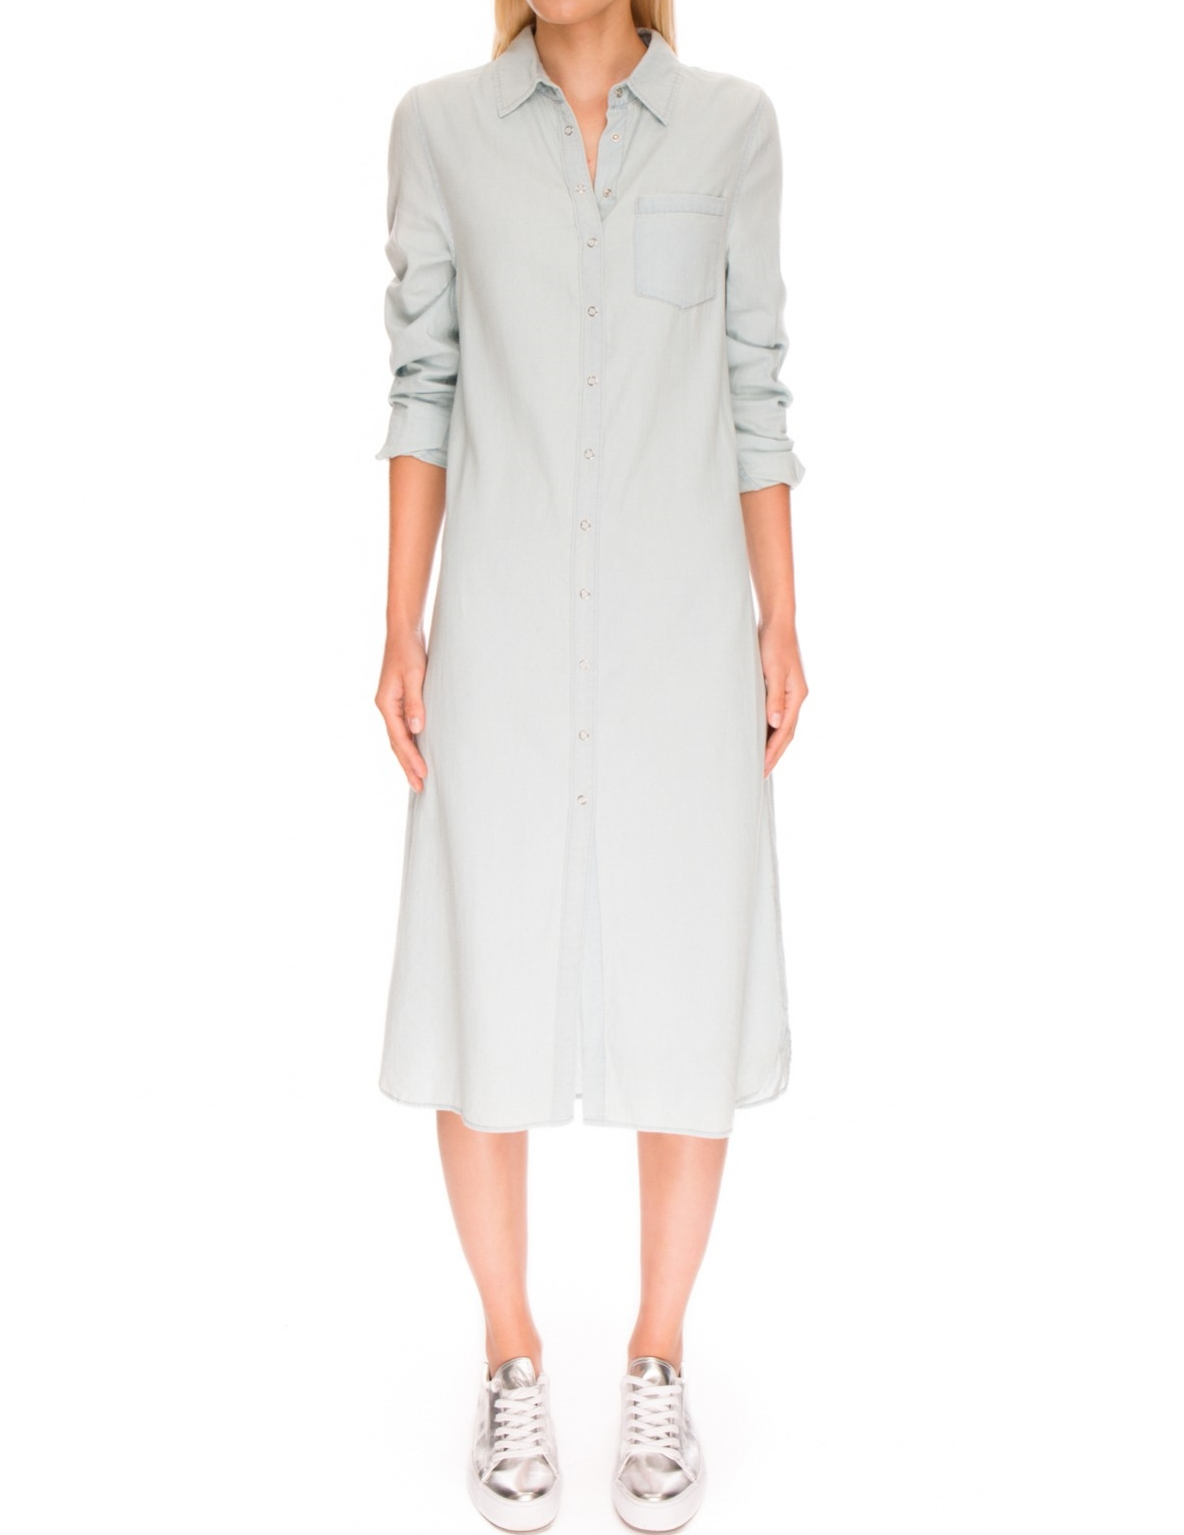 Fifth Label Shirt Dress. Perfect layer for all seasons!